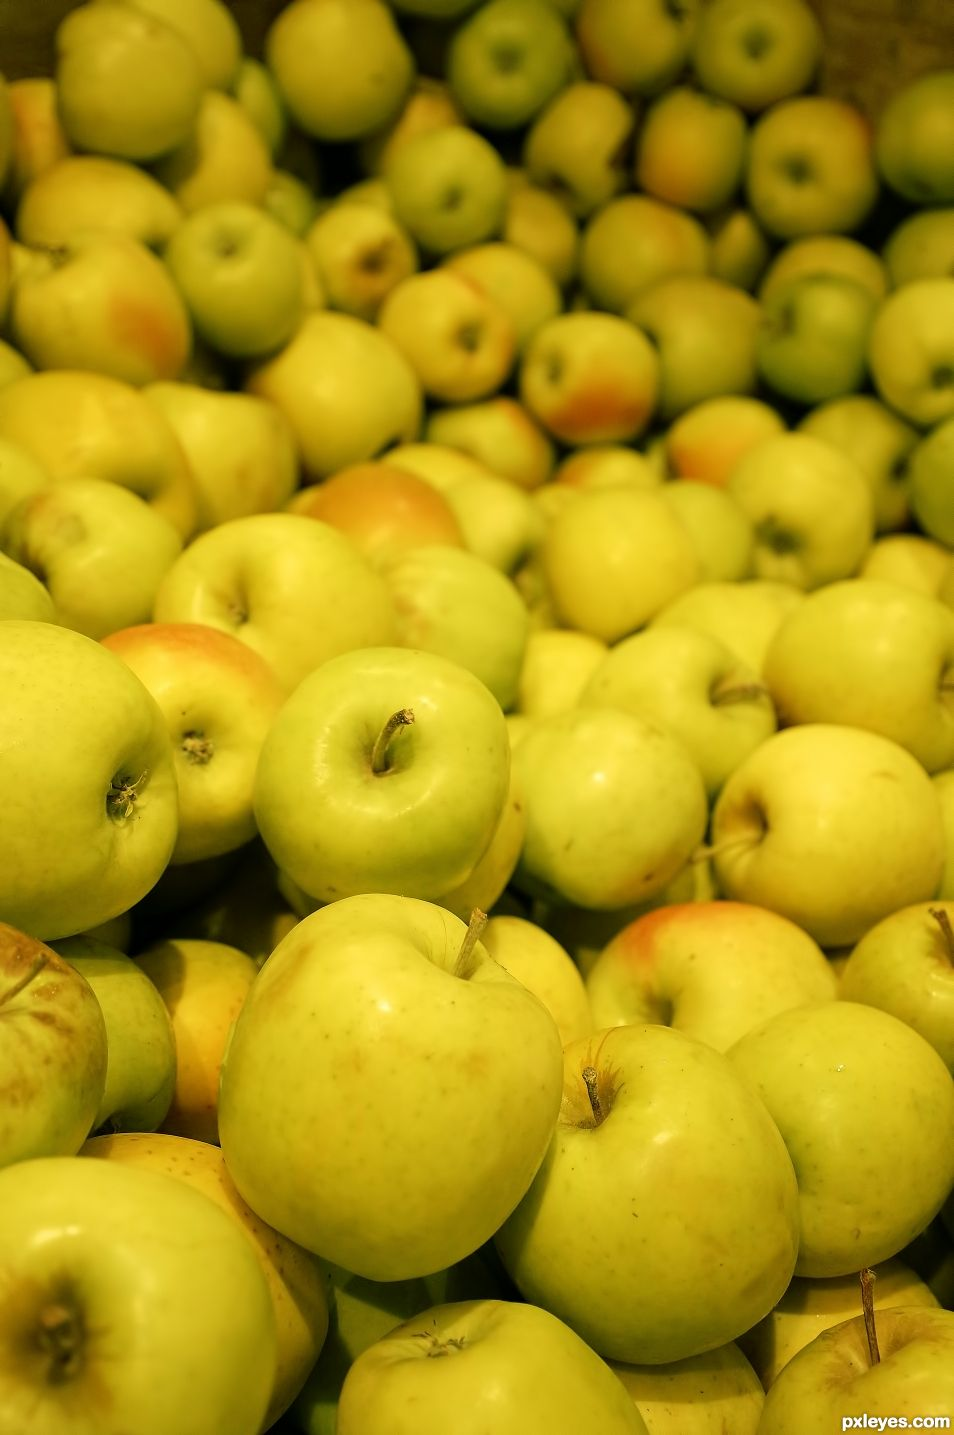 Lodi Apples